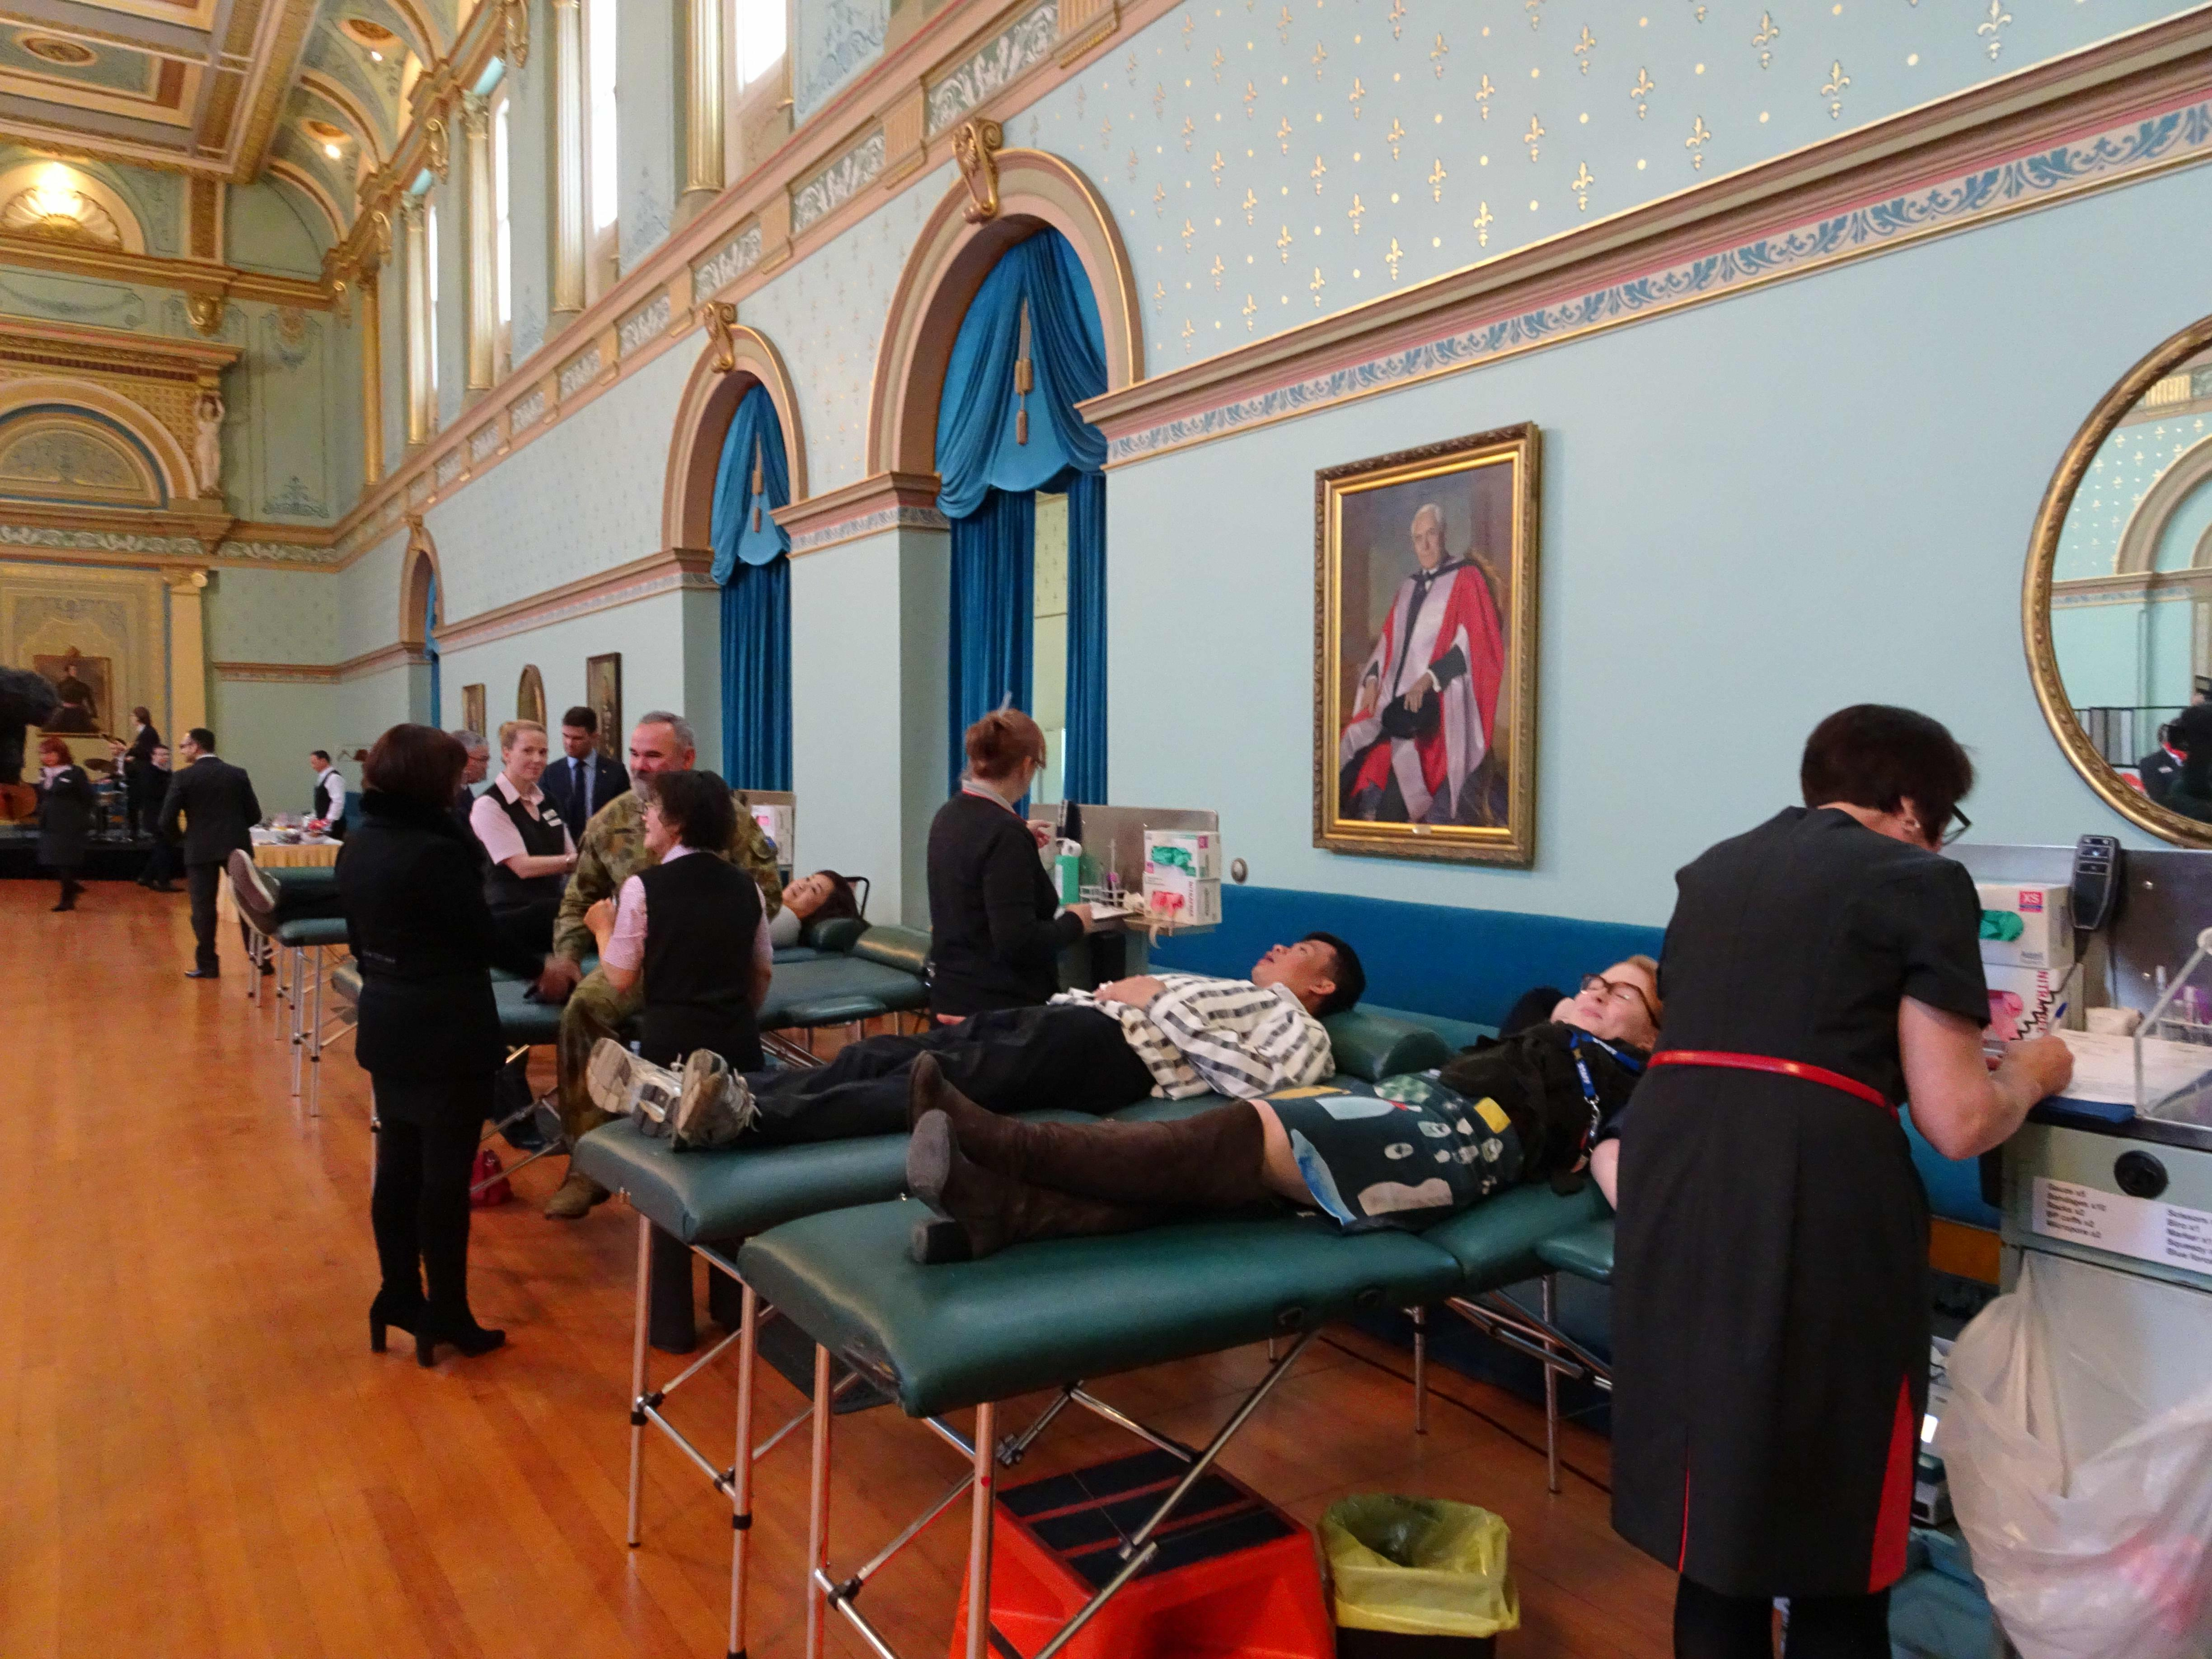 Donors giving blood in the Ballroom